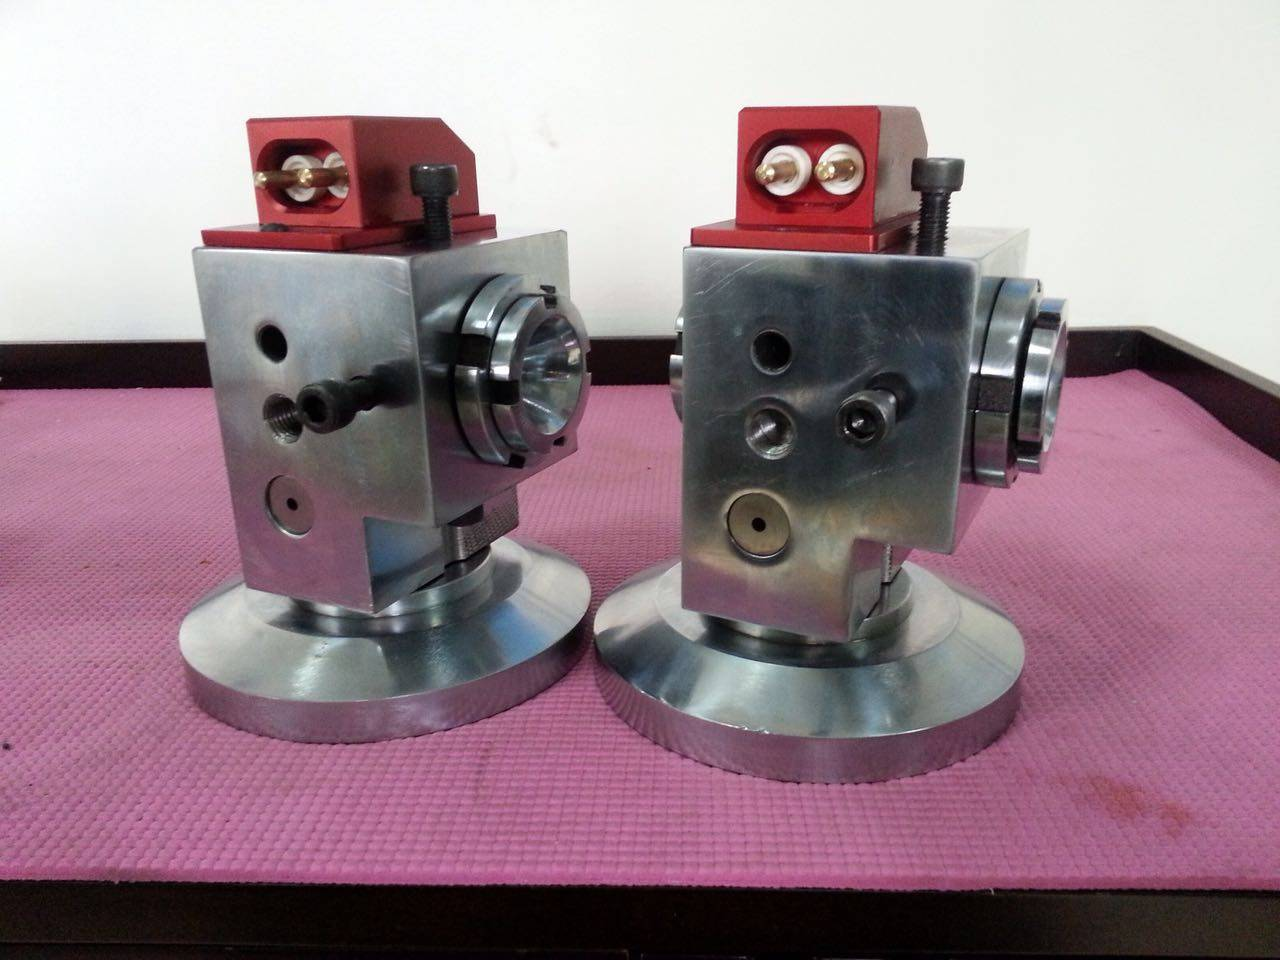 fine-tuning adjustable wire extrusion crosshead